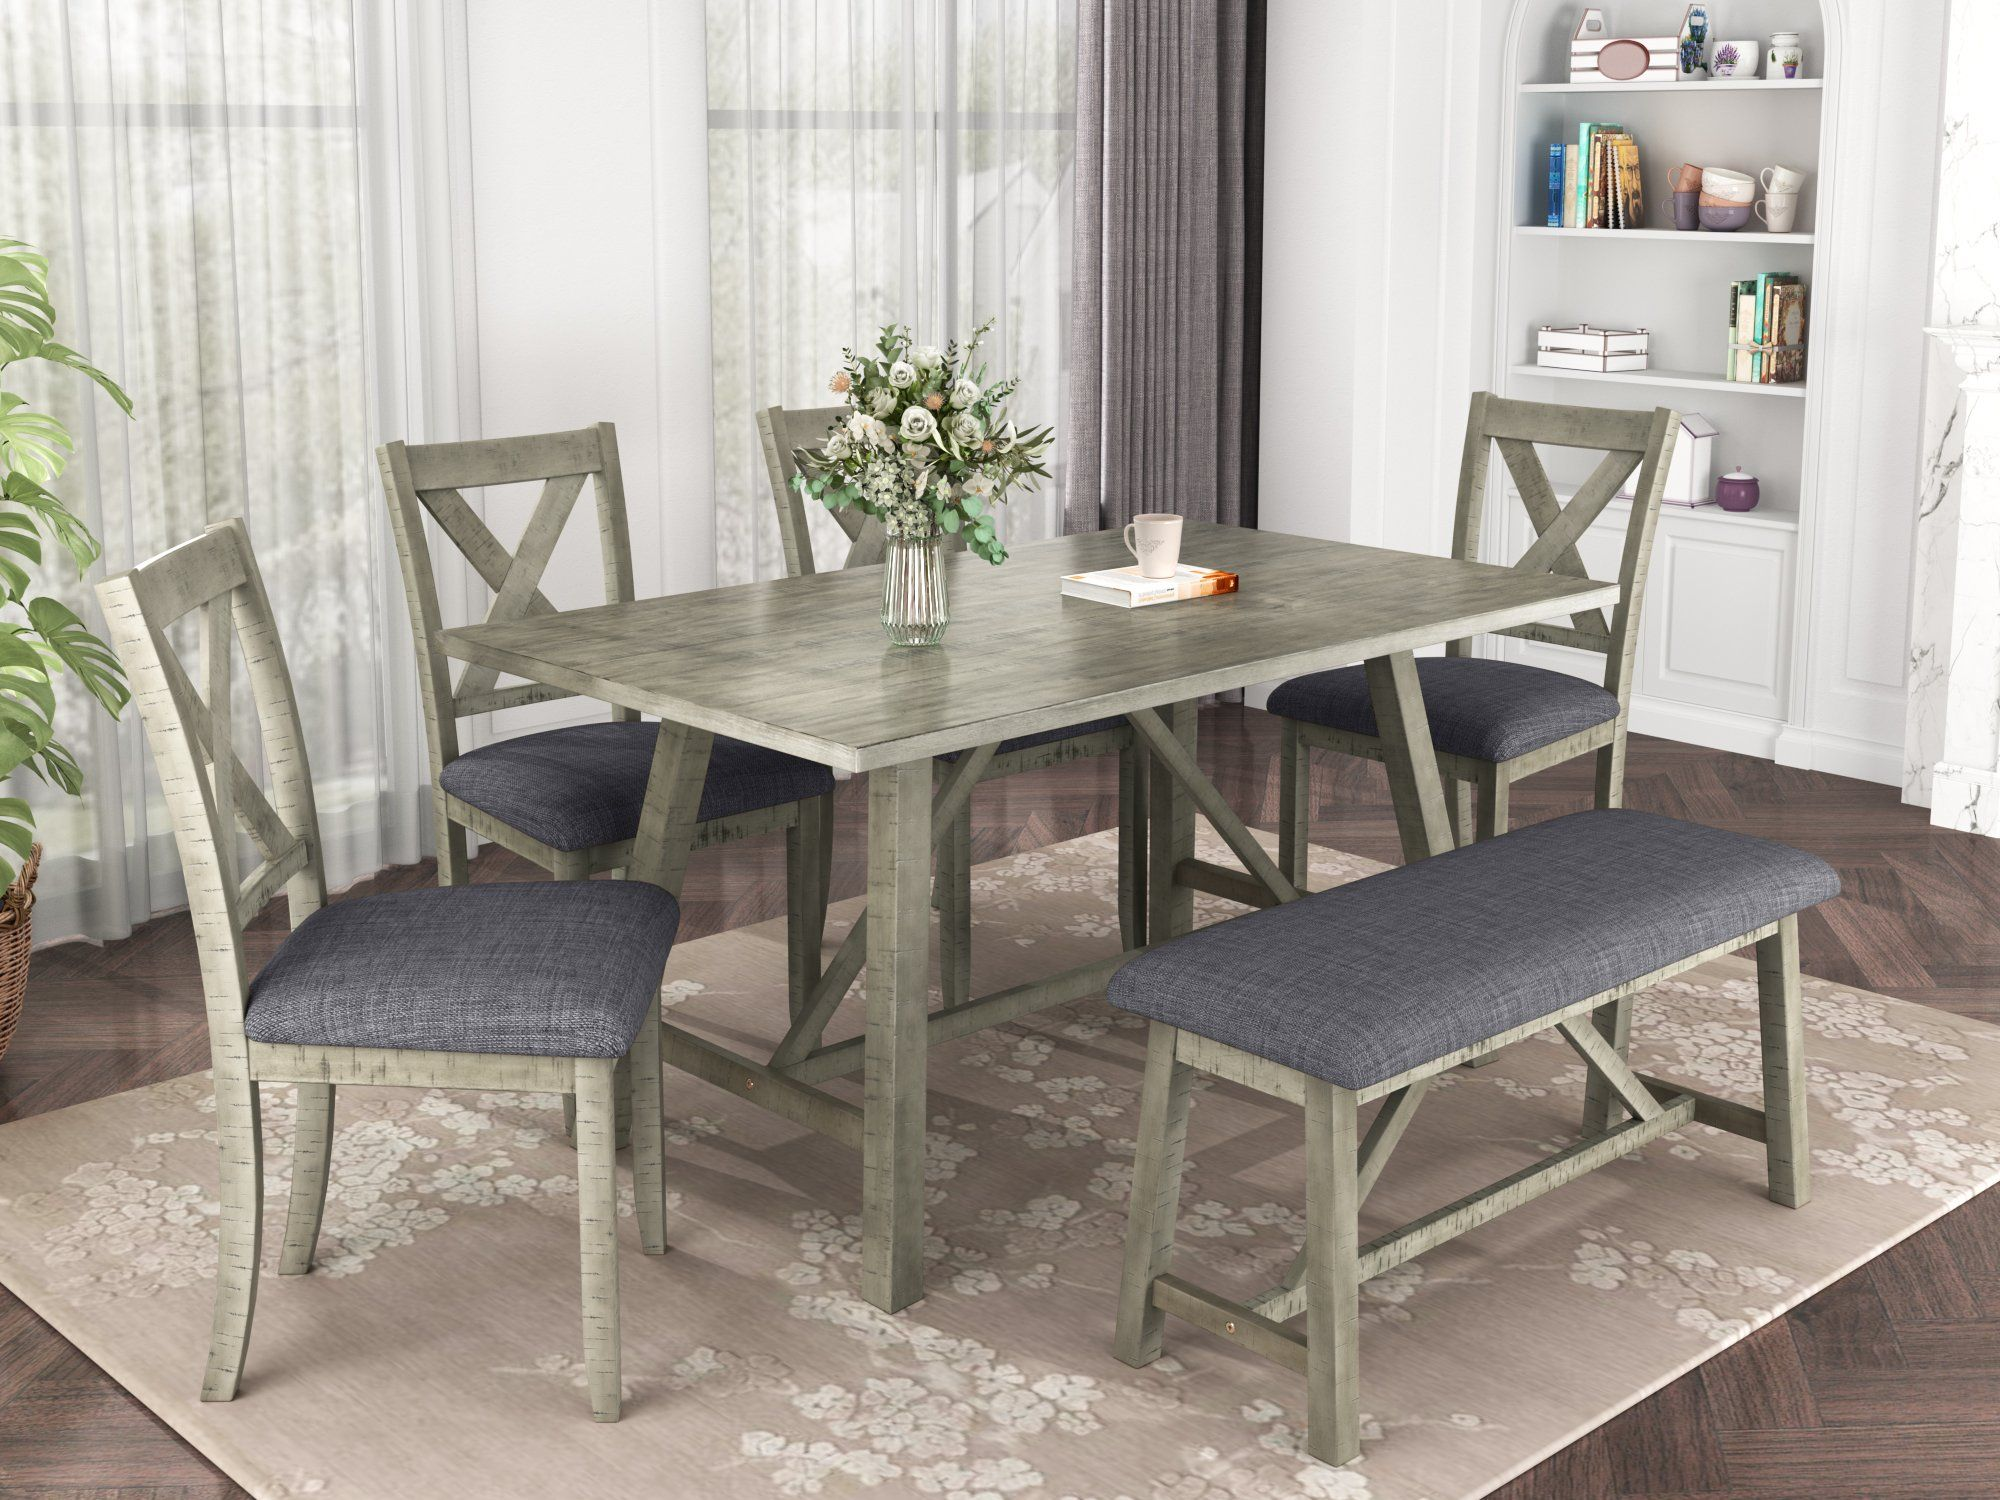 6 Piece Dining Table Set Wood Dining Table and chair Kitchen Table Set with Table, Bench and 4 Chairs, Rustic Style, Gray